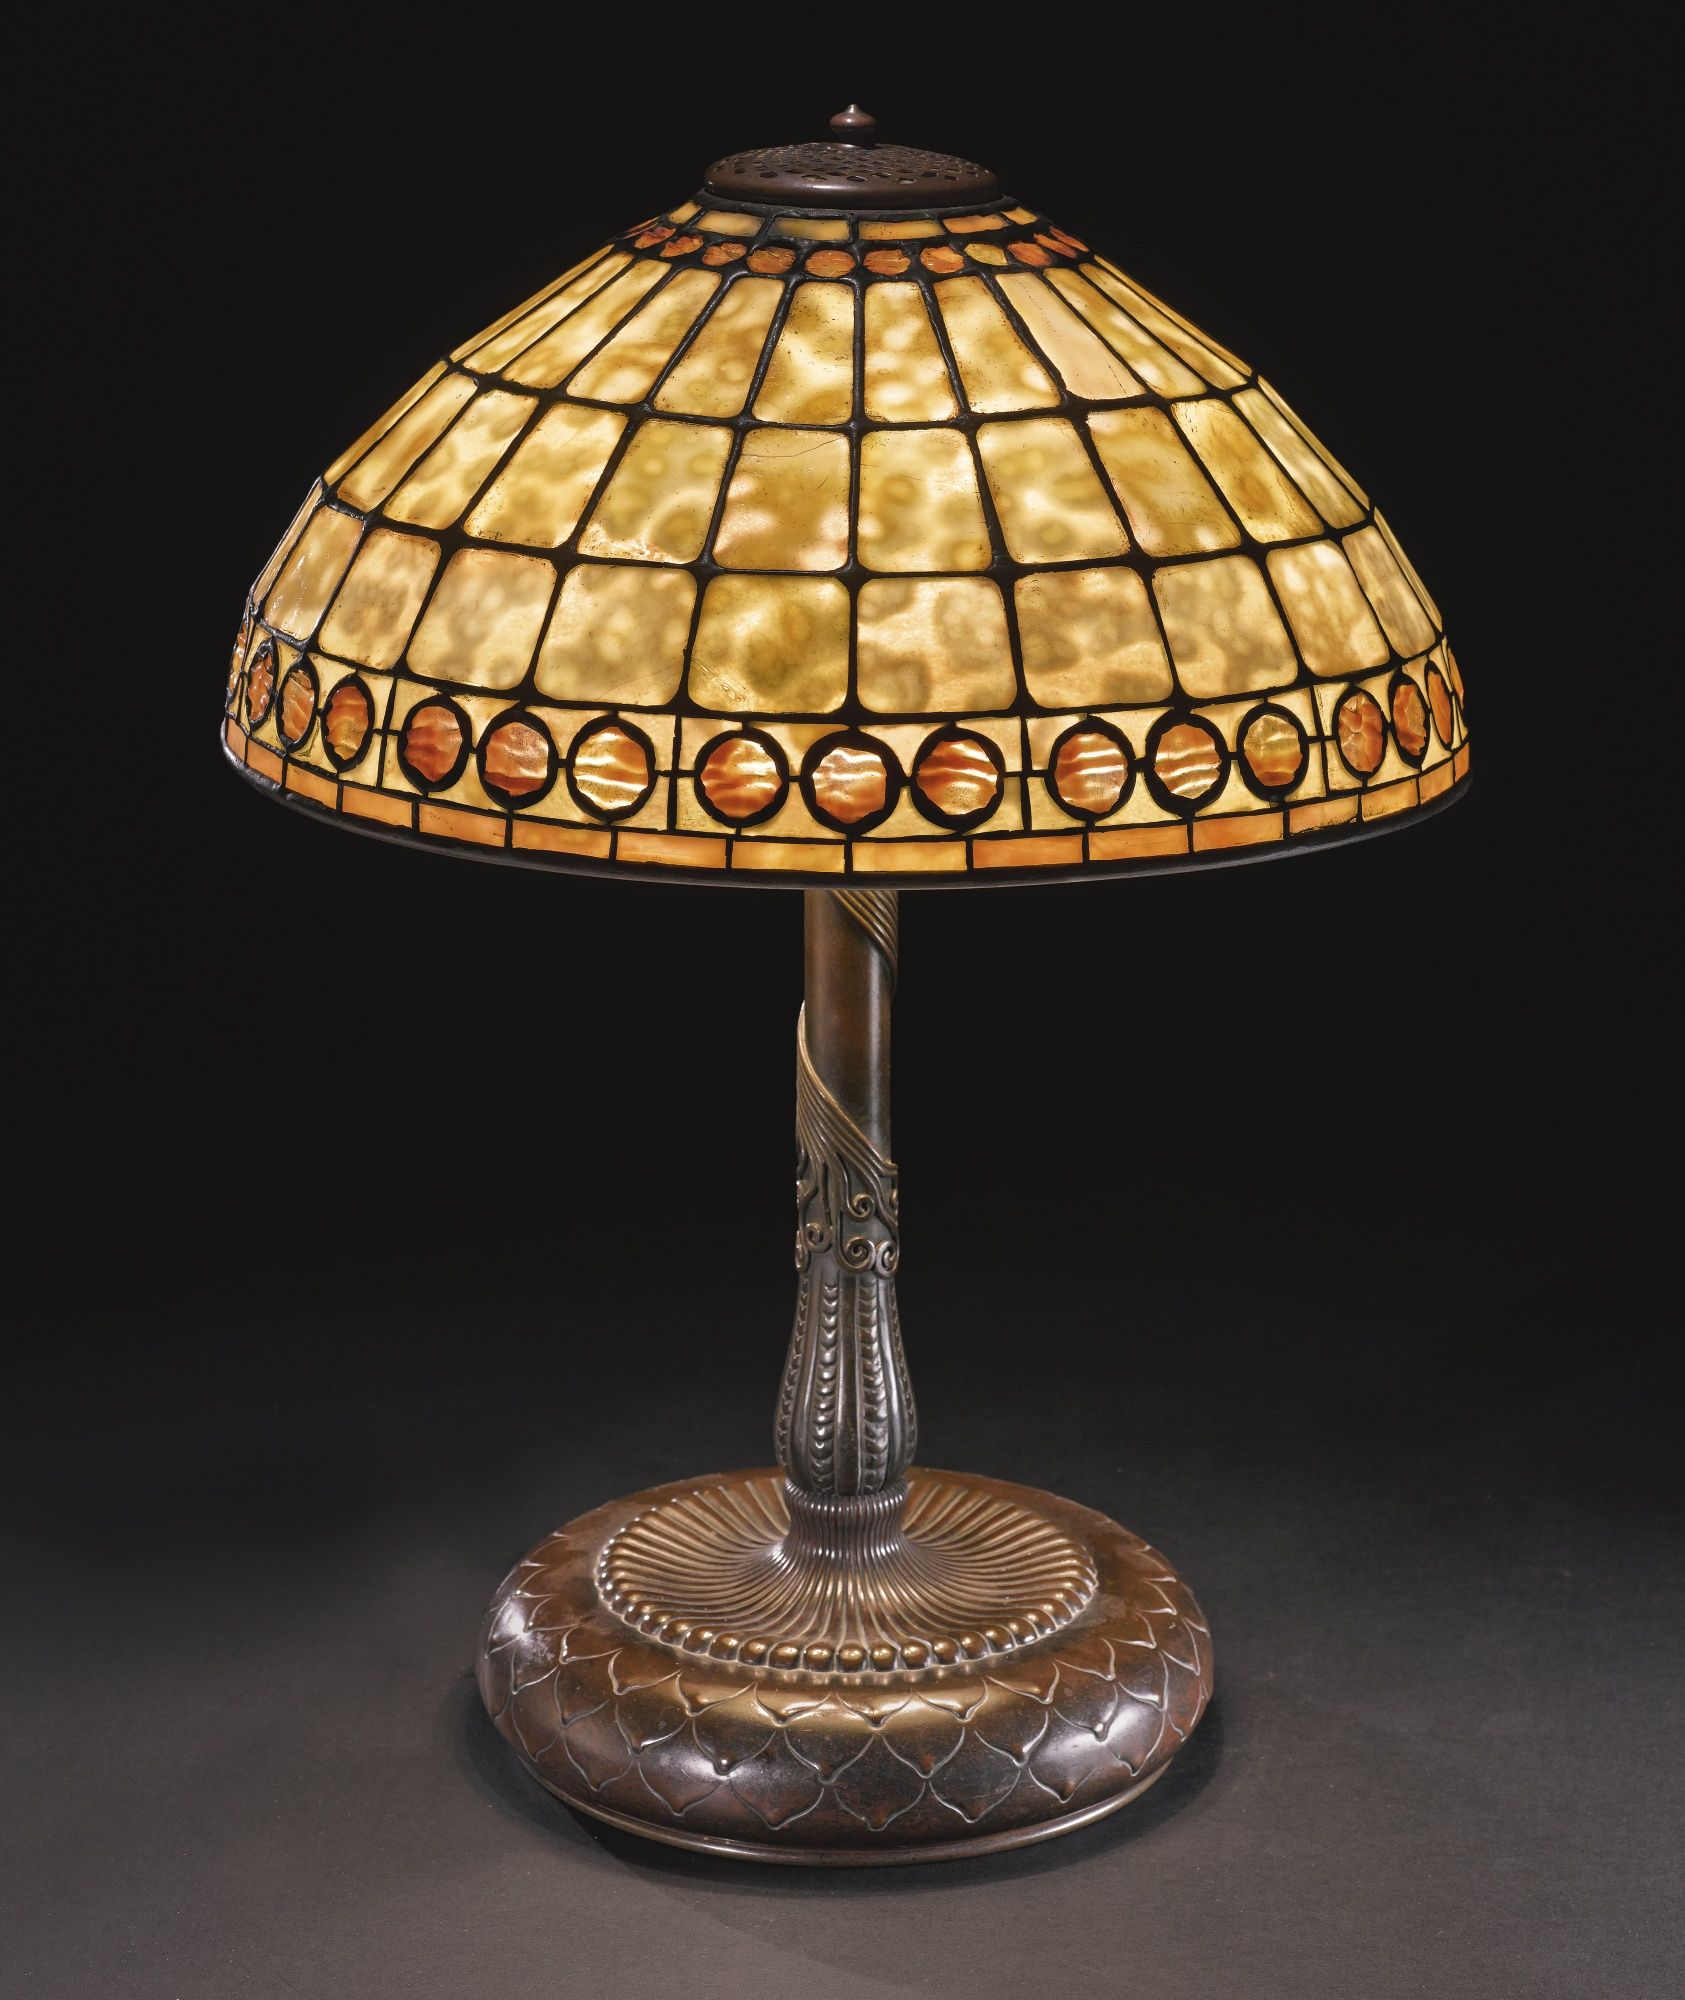 Tiffany studios new york geometric leaded glass and patinated bronze table lamp